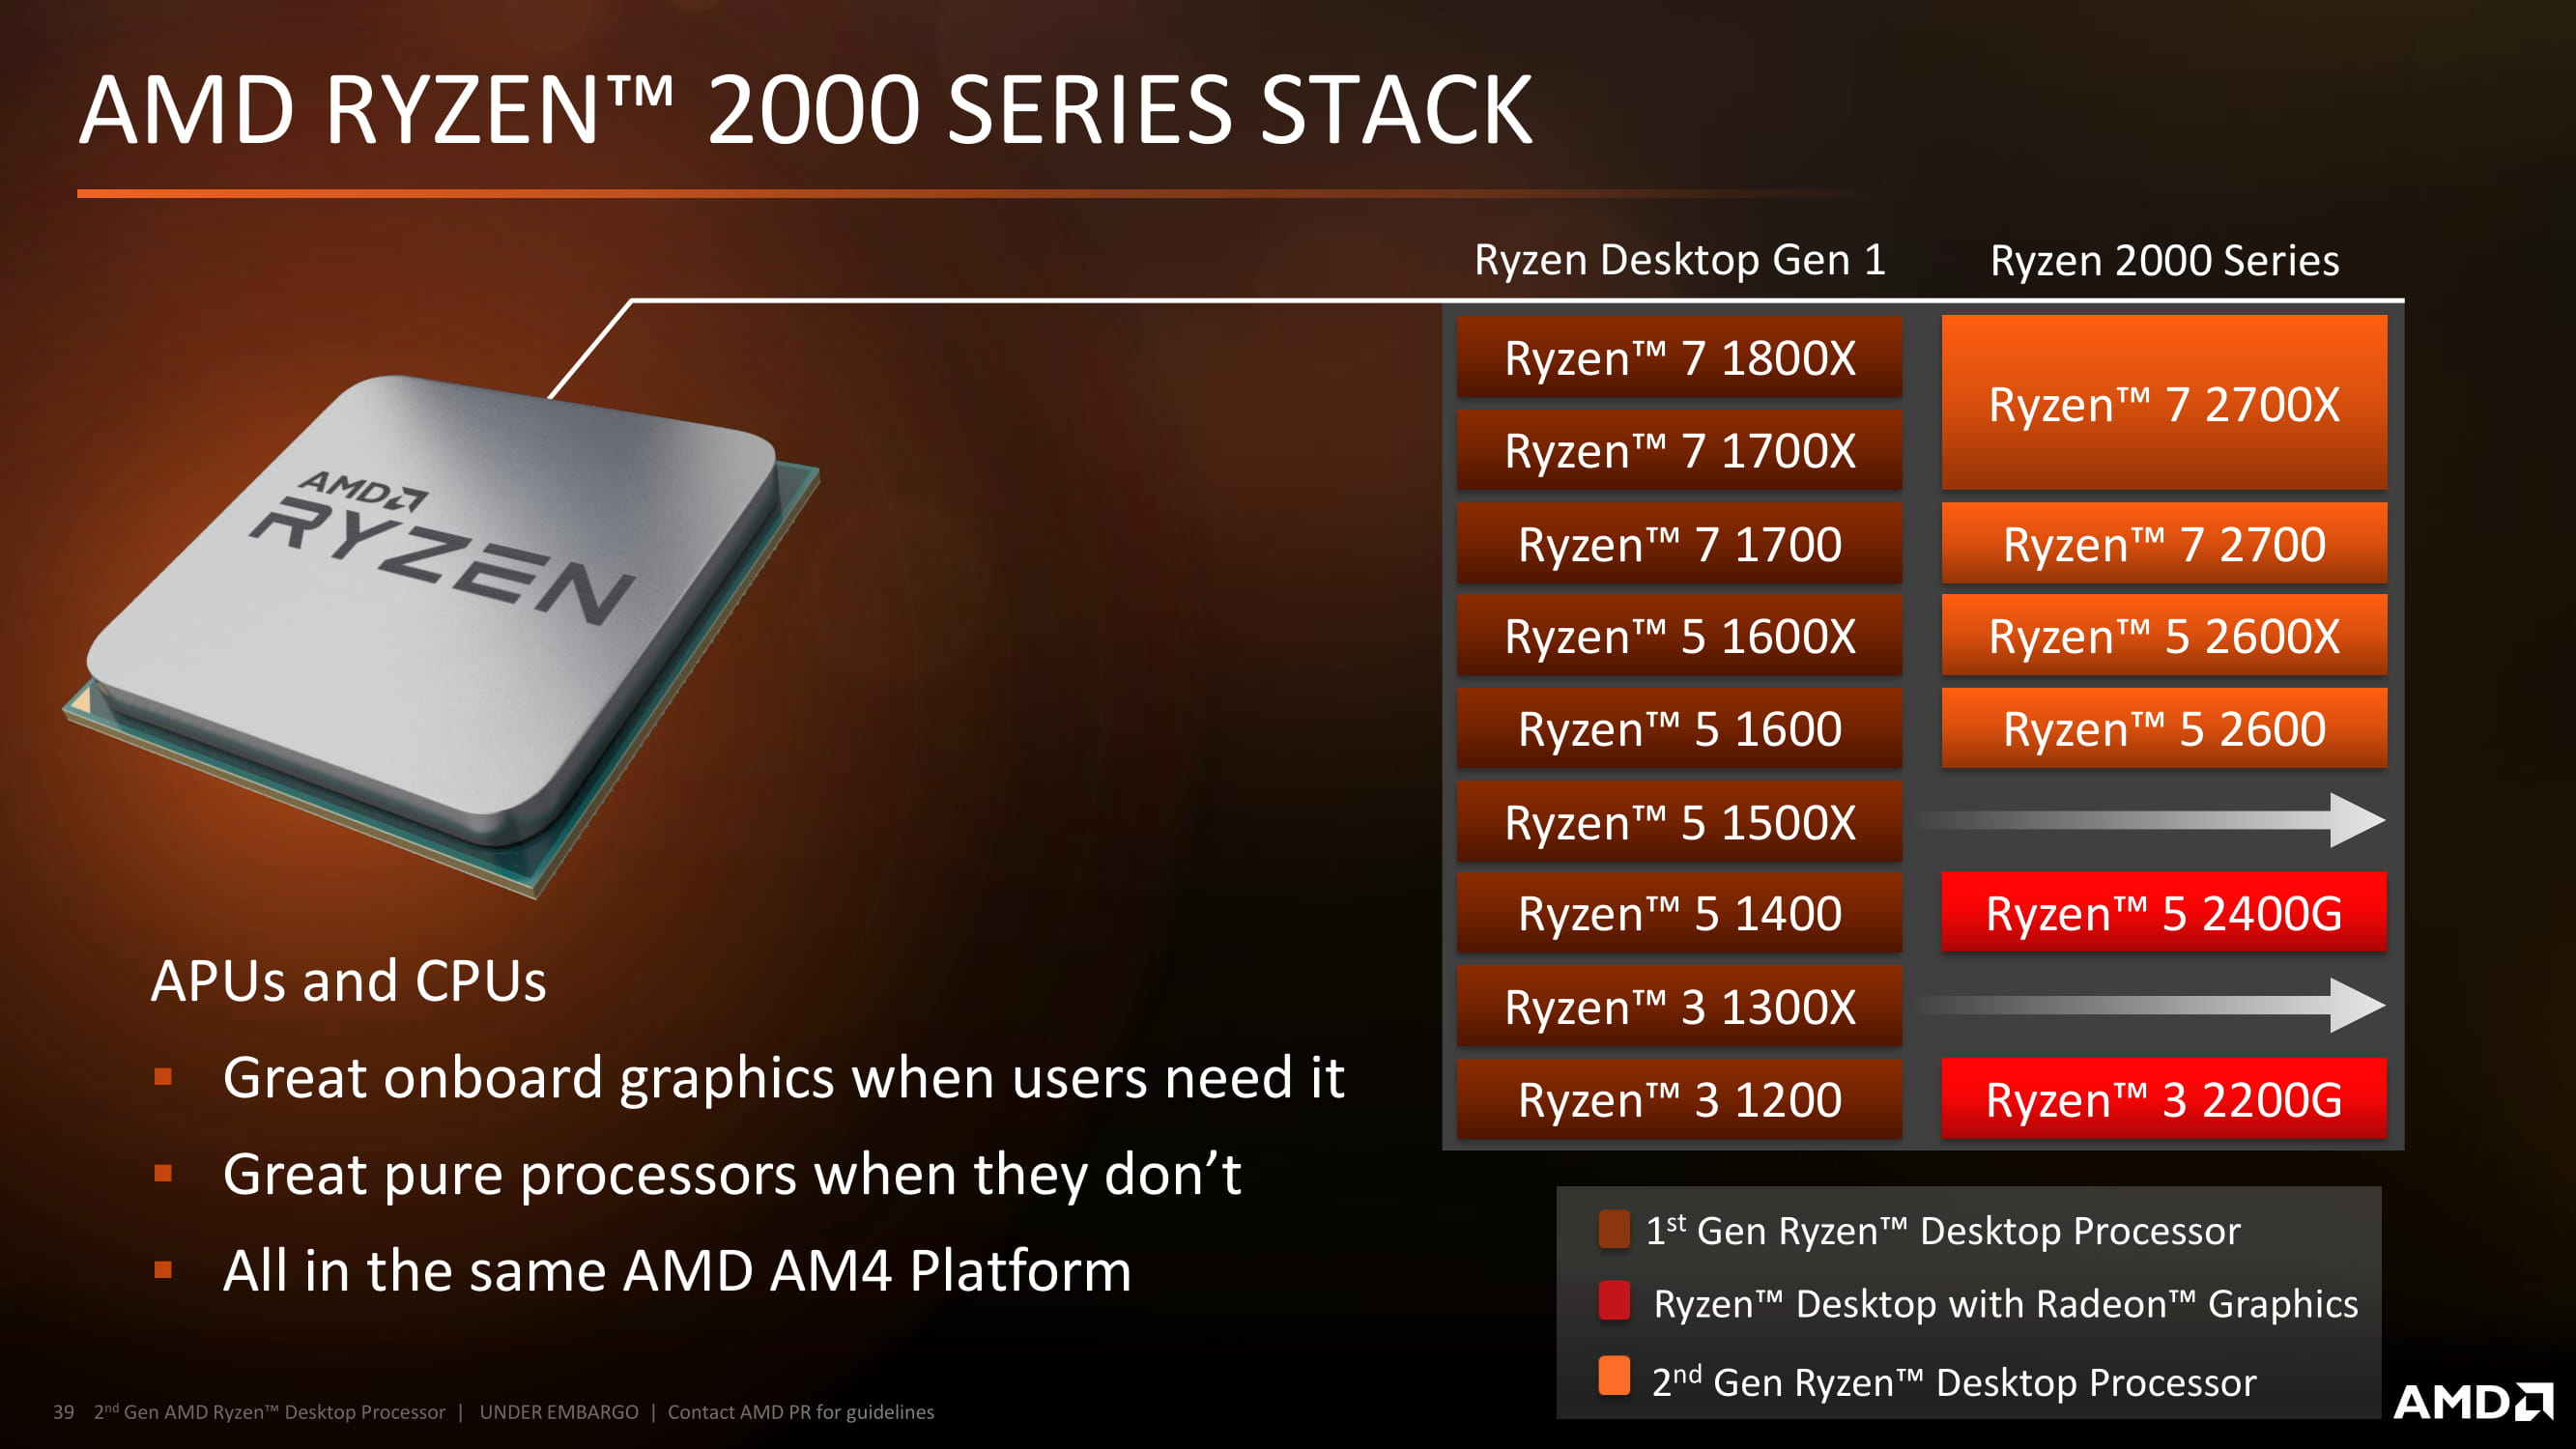 2nd Gen AMD Ryzen Desktop Processor-2-39.jpg